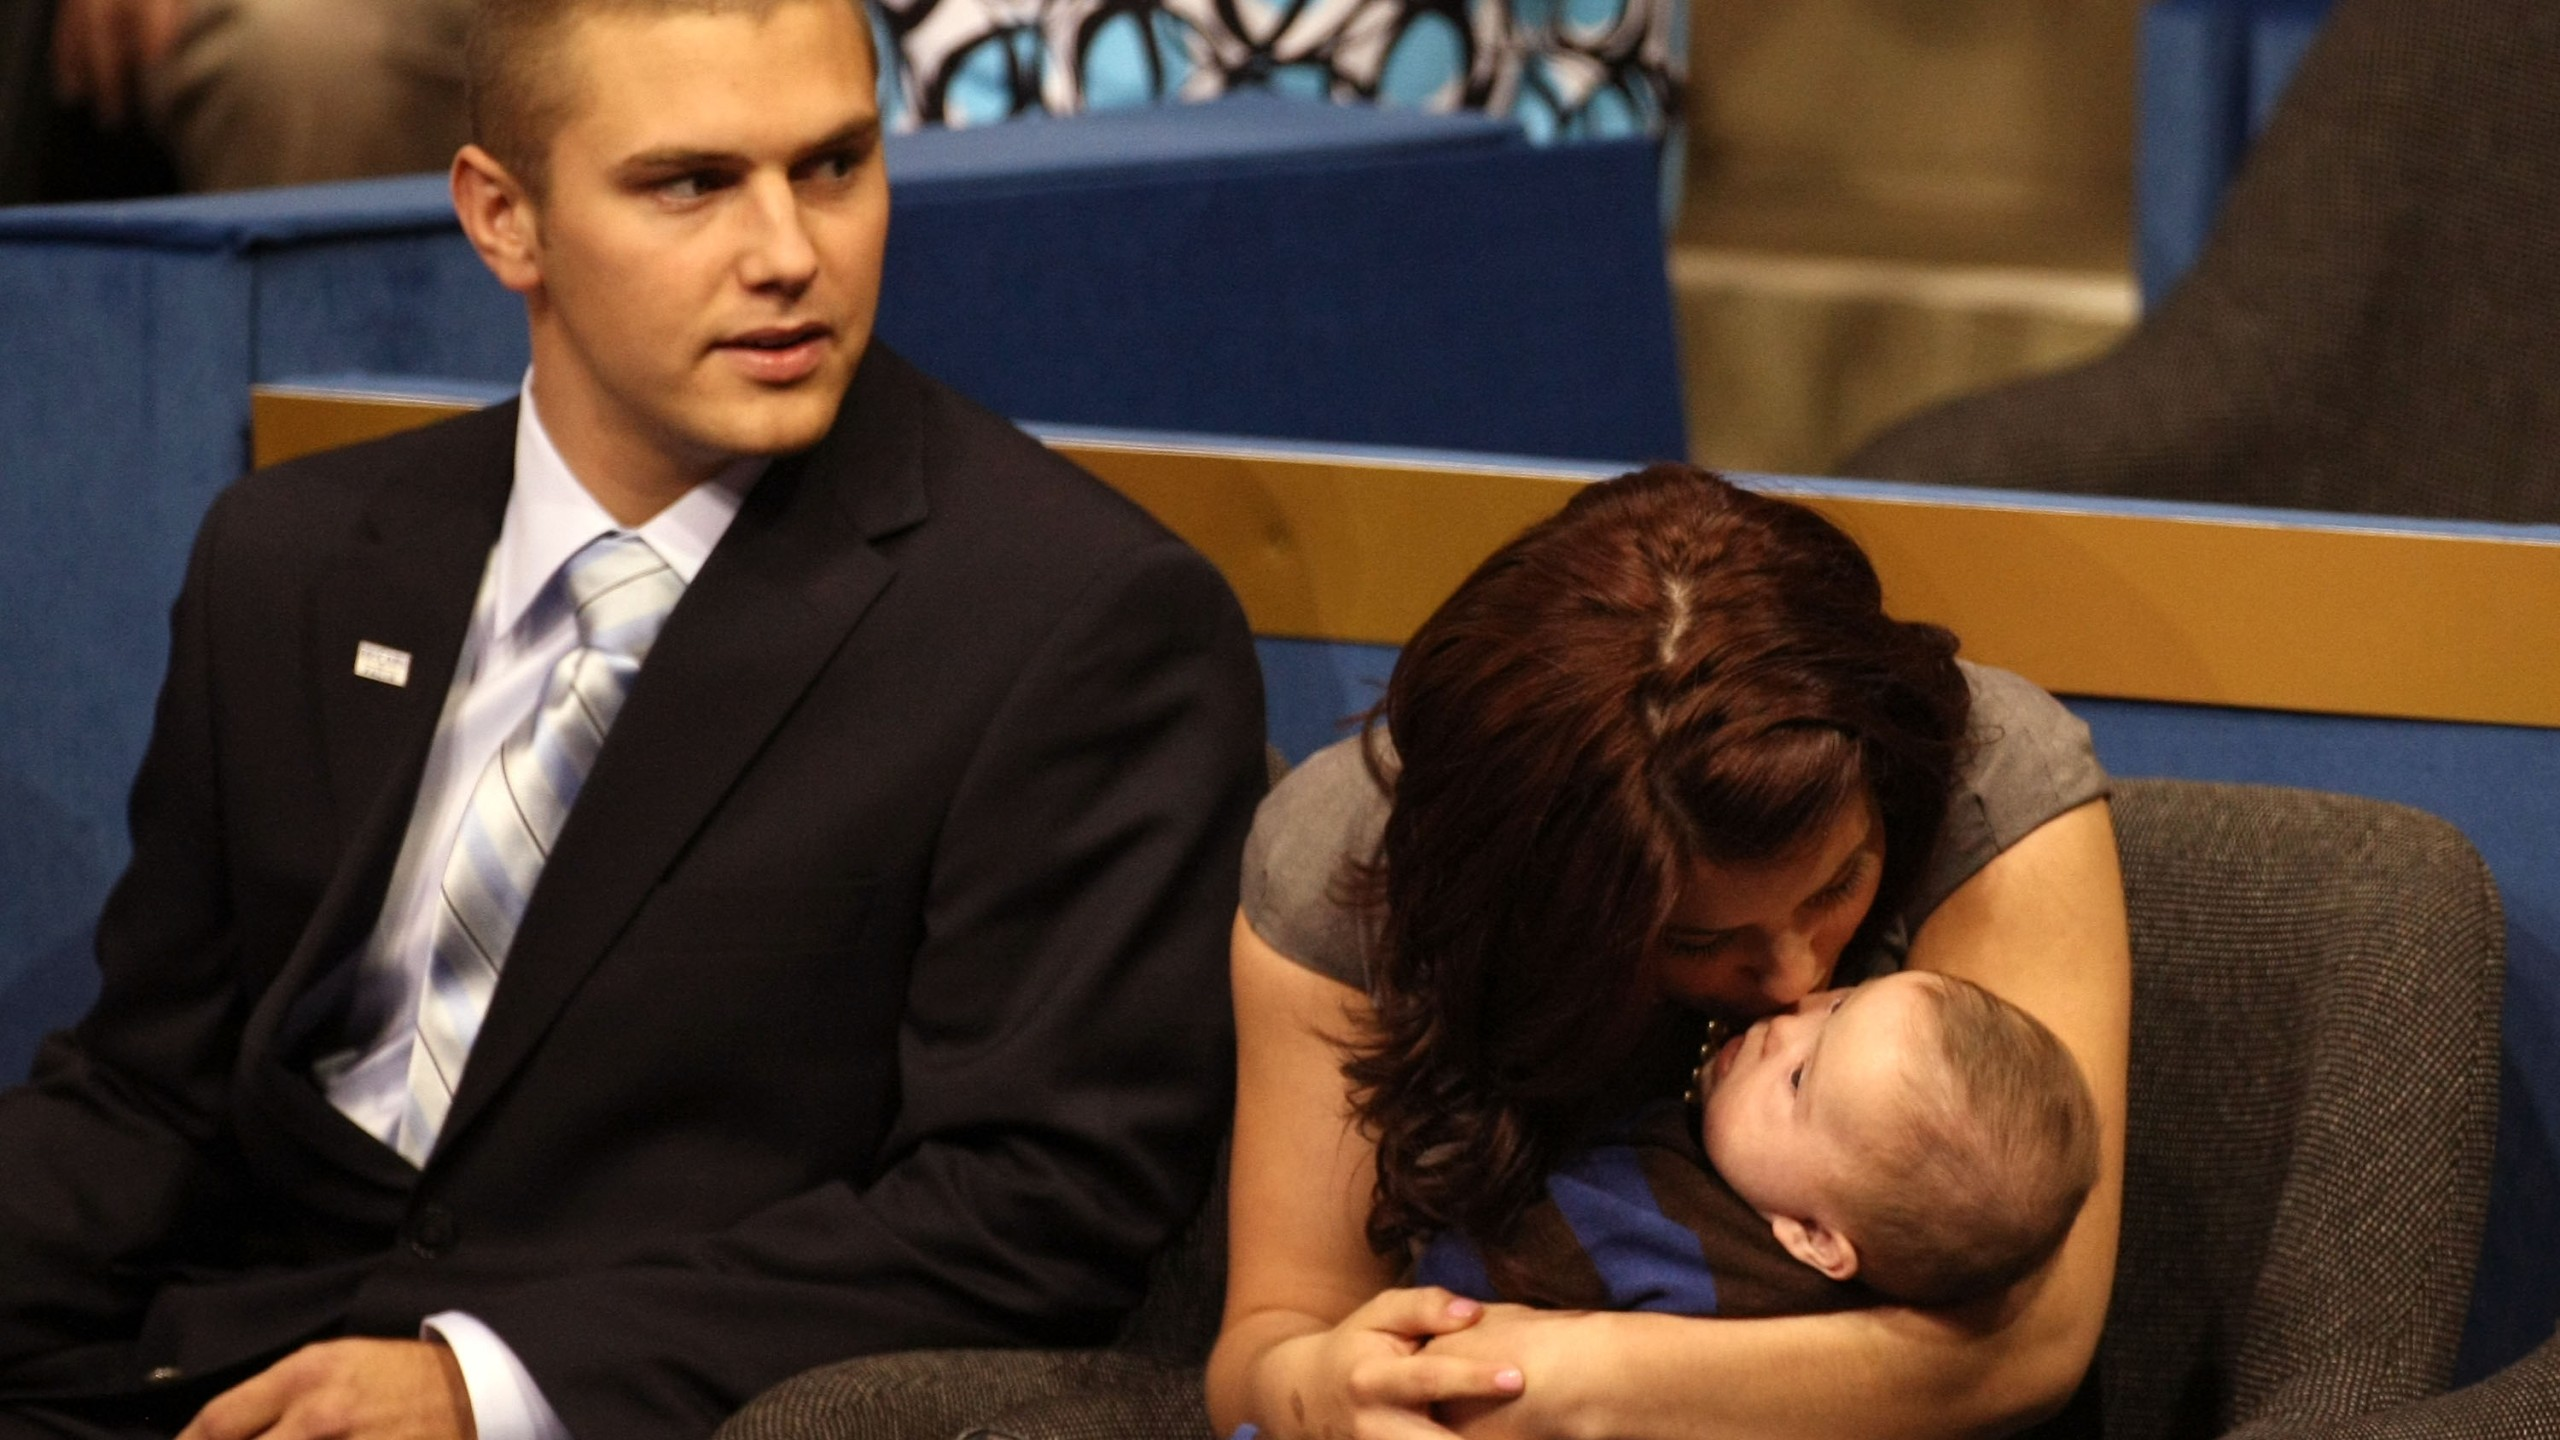 Track Palin sits with Willow Palin while holding Trig Palin on day three of the Republican National Convention on Sept. 3, 2008 in St. Paul, Minnesota. (Credit: Justin Sullivan/Getty Images)